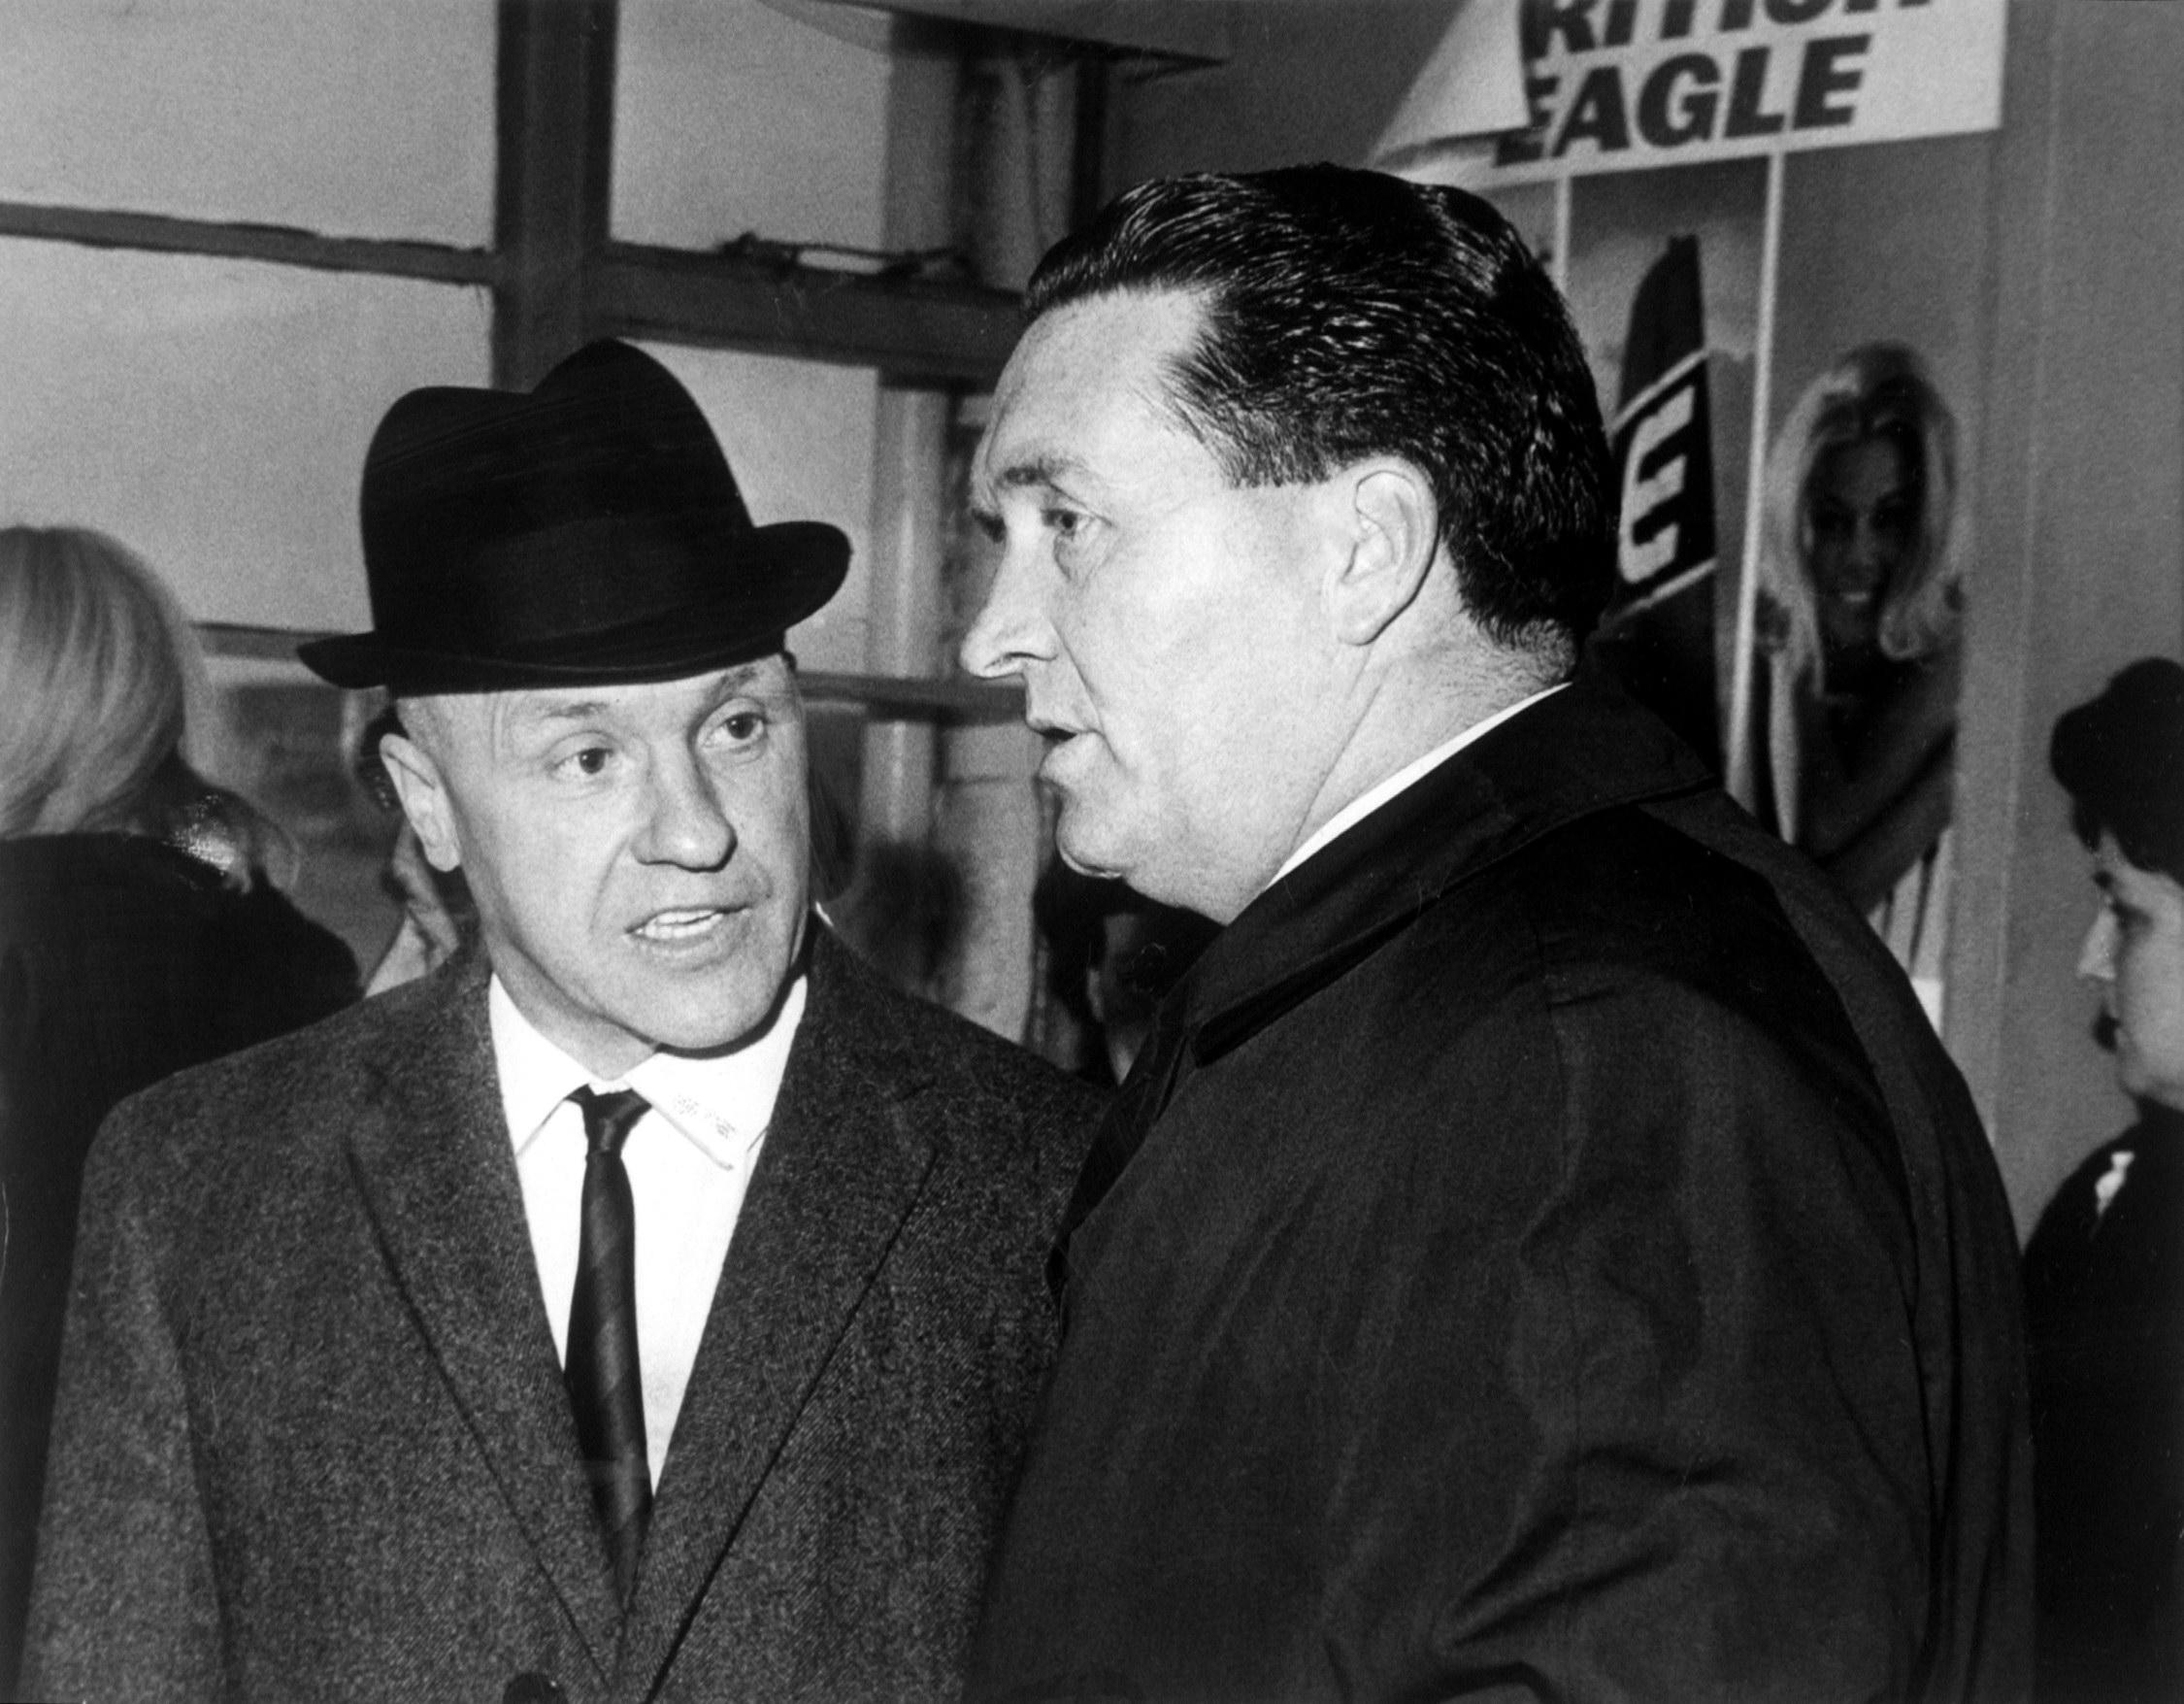 Busby, Shankly and Stein – the three kings bearing gifts and wisdom